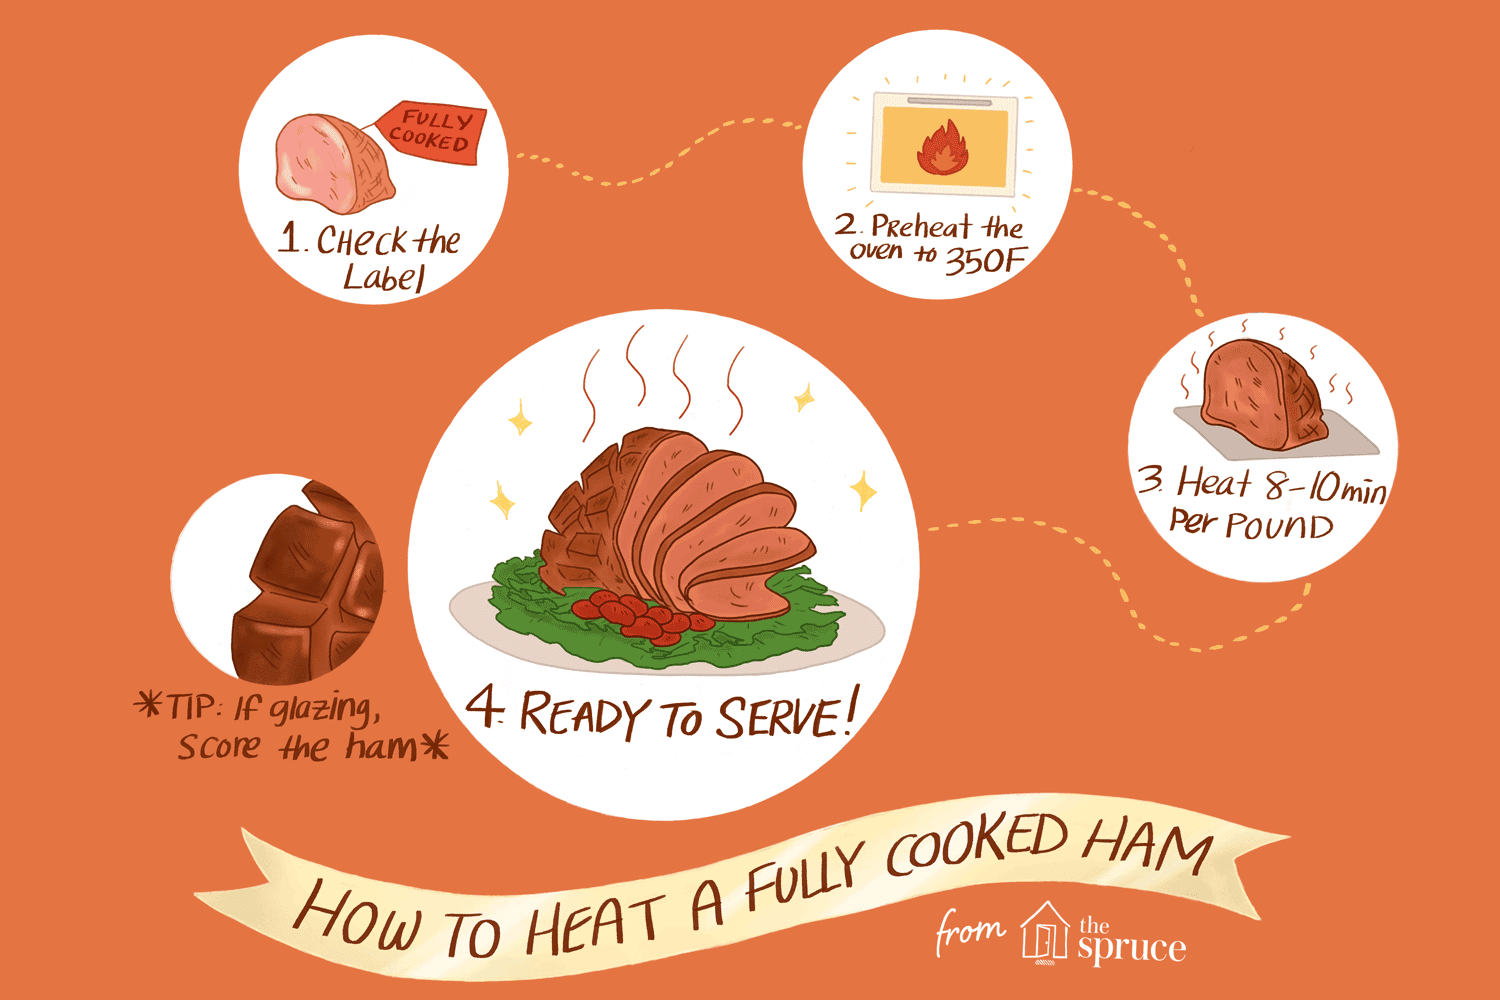 Here's How to Heat a Fully Cooked Ham